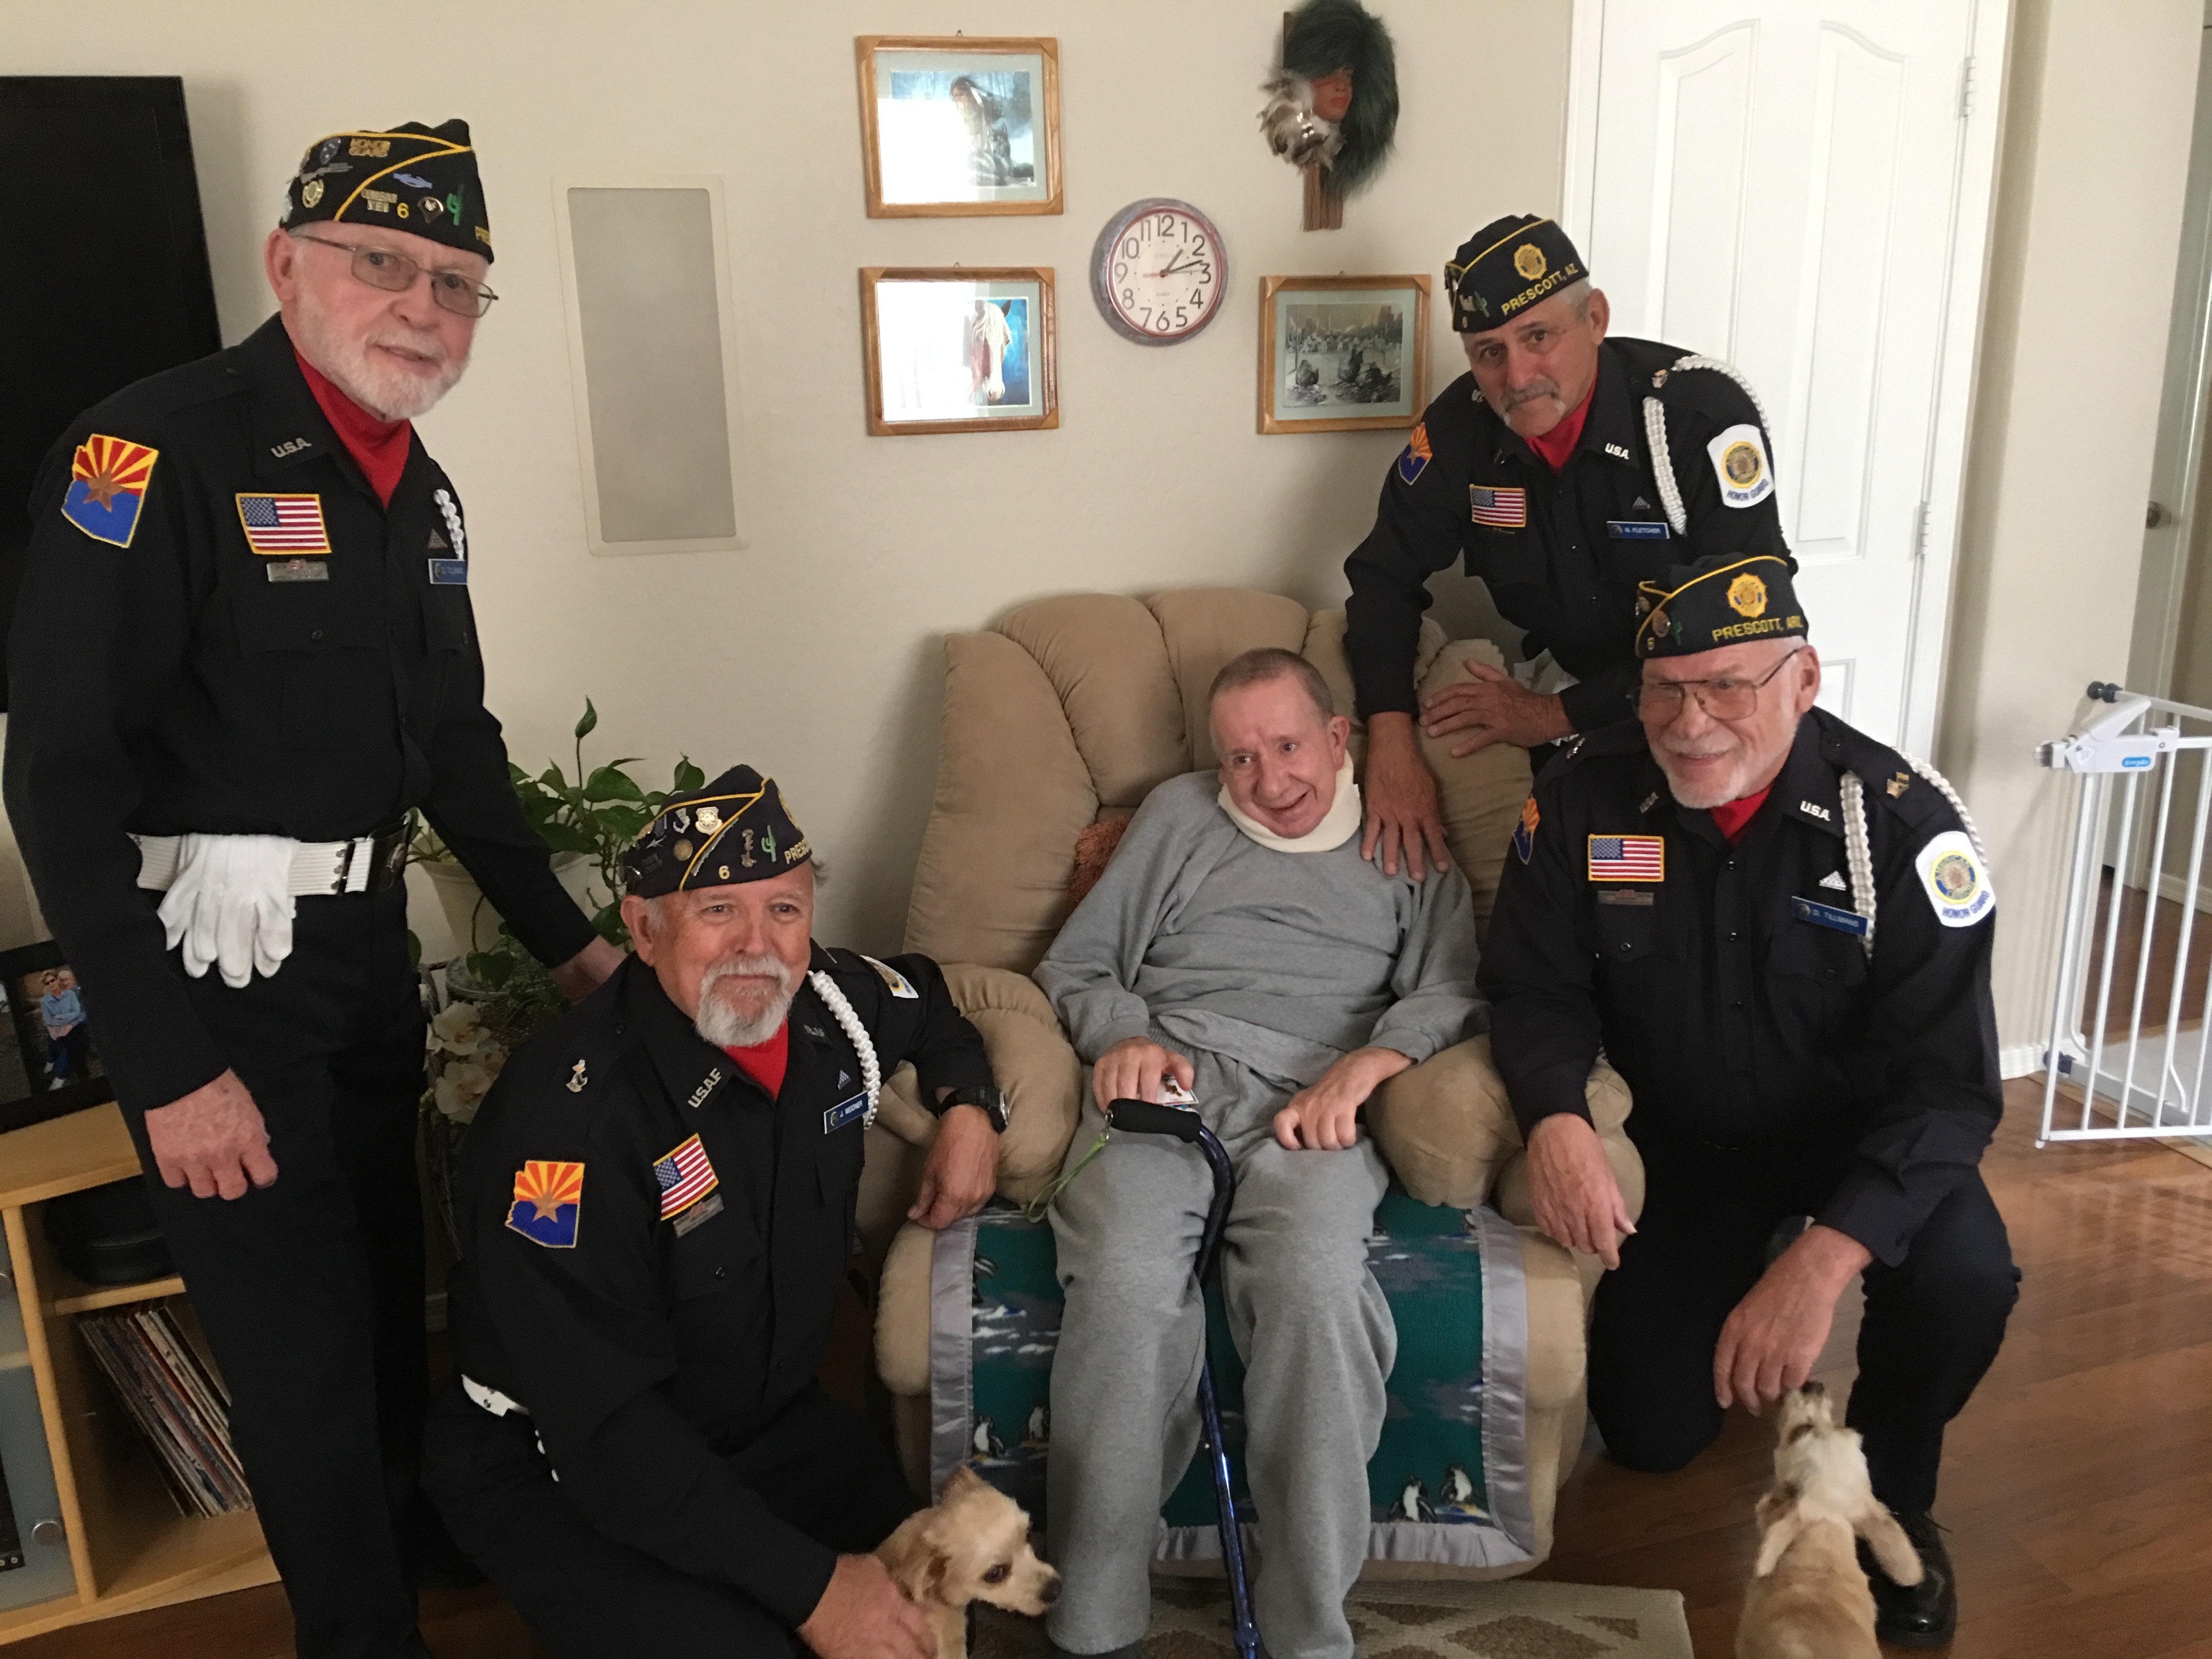 Prescott's American Legion Honor Guard honored to serve those who served the nation